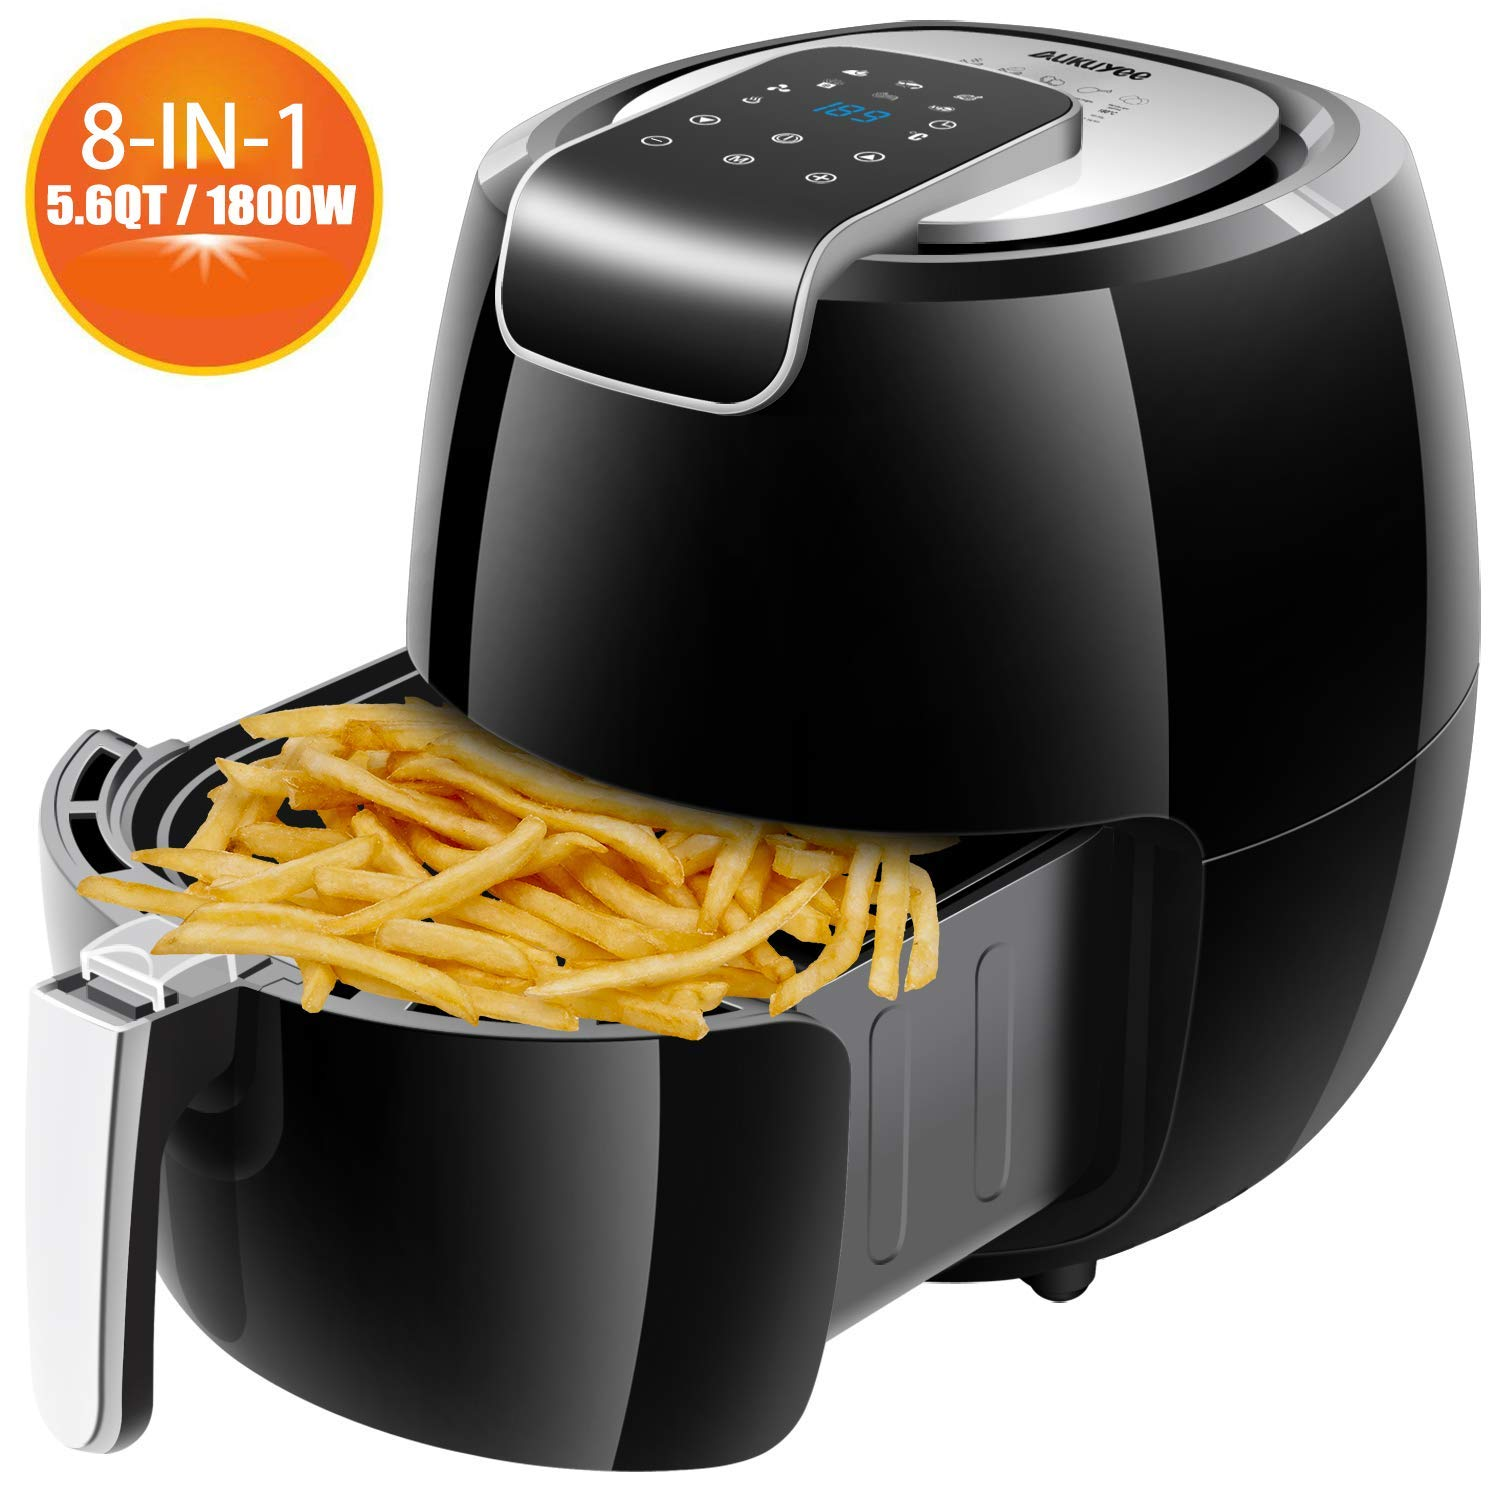 Air fryer, AUKUYEE Hot Air fryer Oil less Cooker with Touch Screen Control, Dishwasher Safe, Recipes, XL 5.6QT/1800W for Fast, Healthy & Oil-Free Cooking(Black)